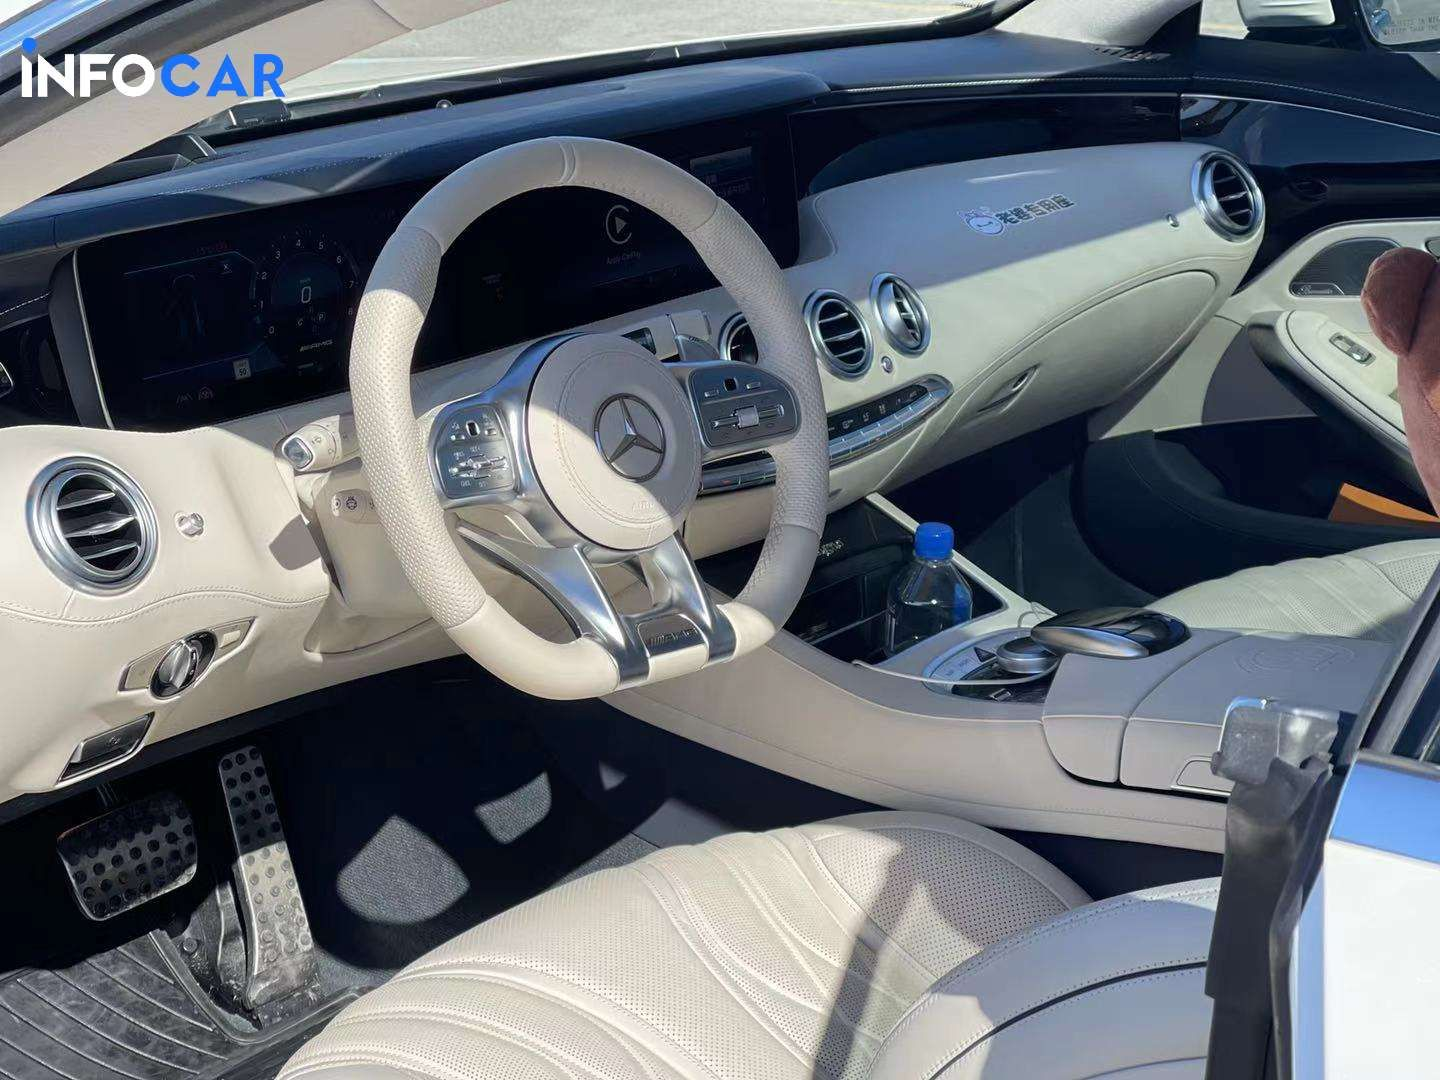 2020 Mercedes-Benz S-Class 63 AMG  - INFOCAR - Toronto's Most Comprehensive New and Used Auto Trading Platform